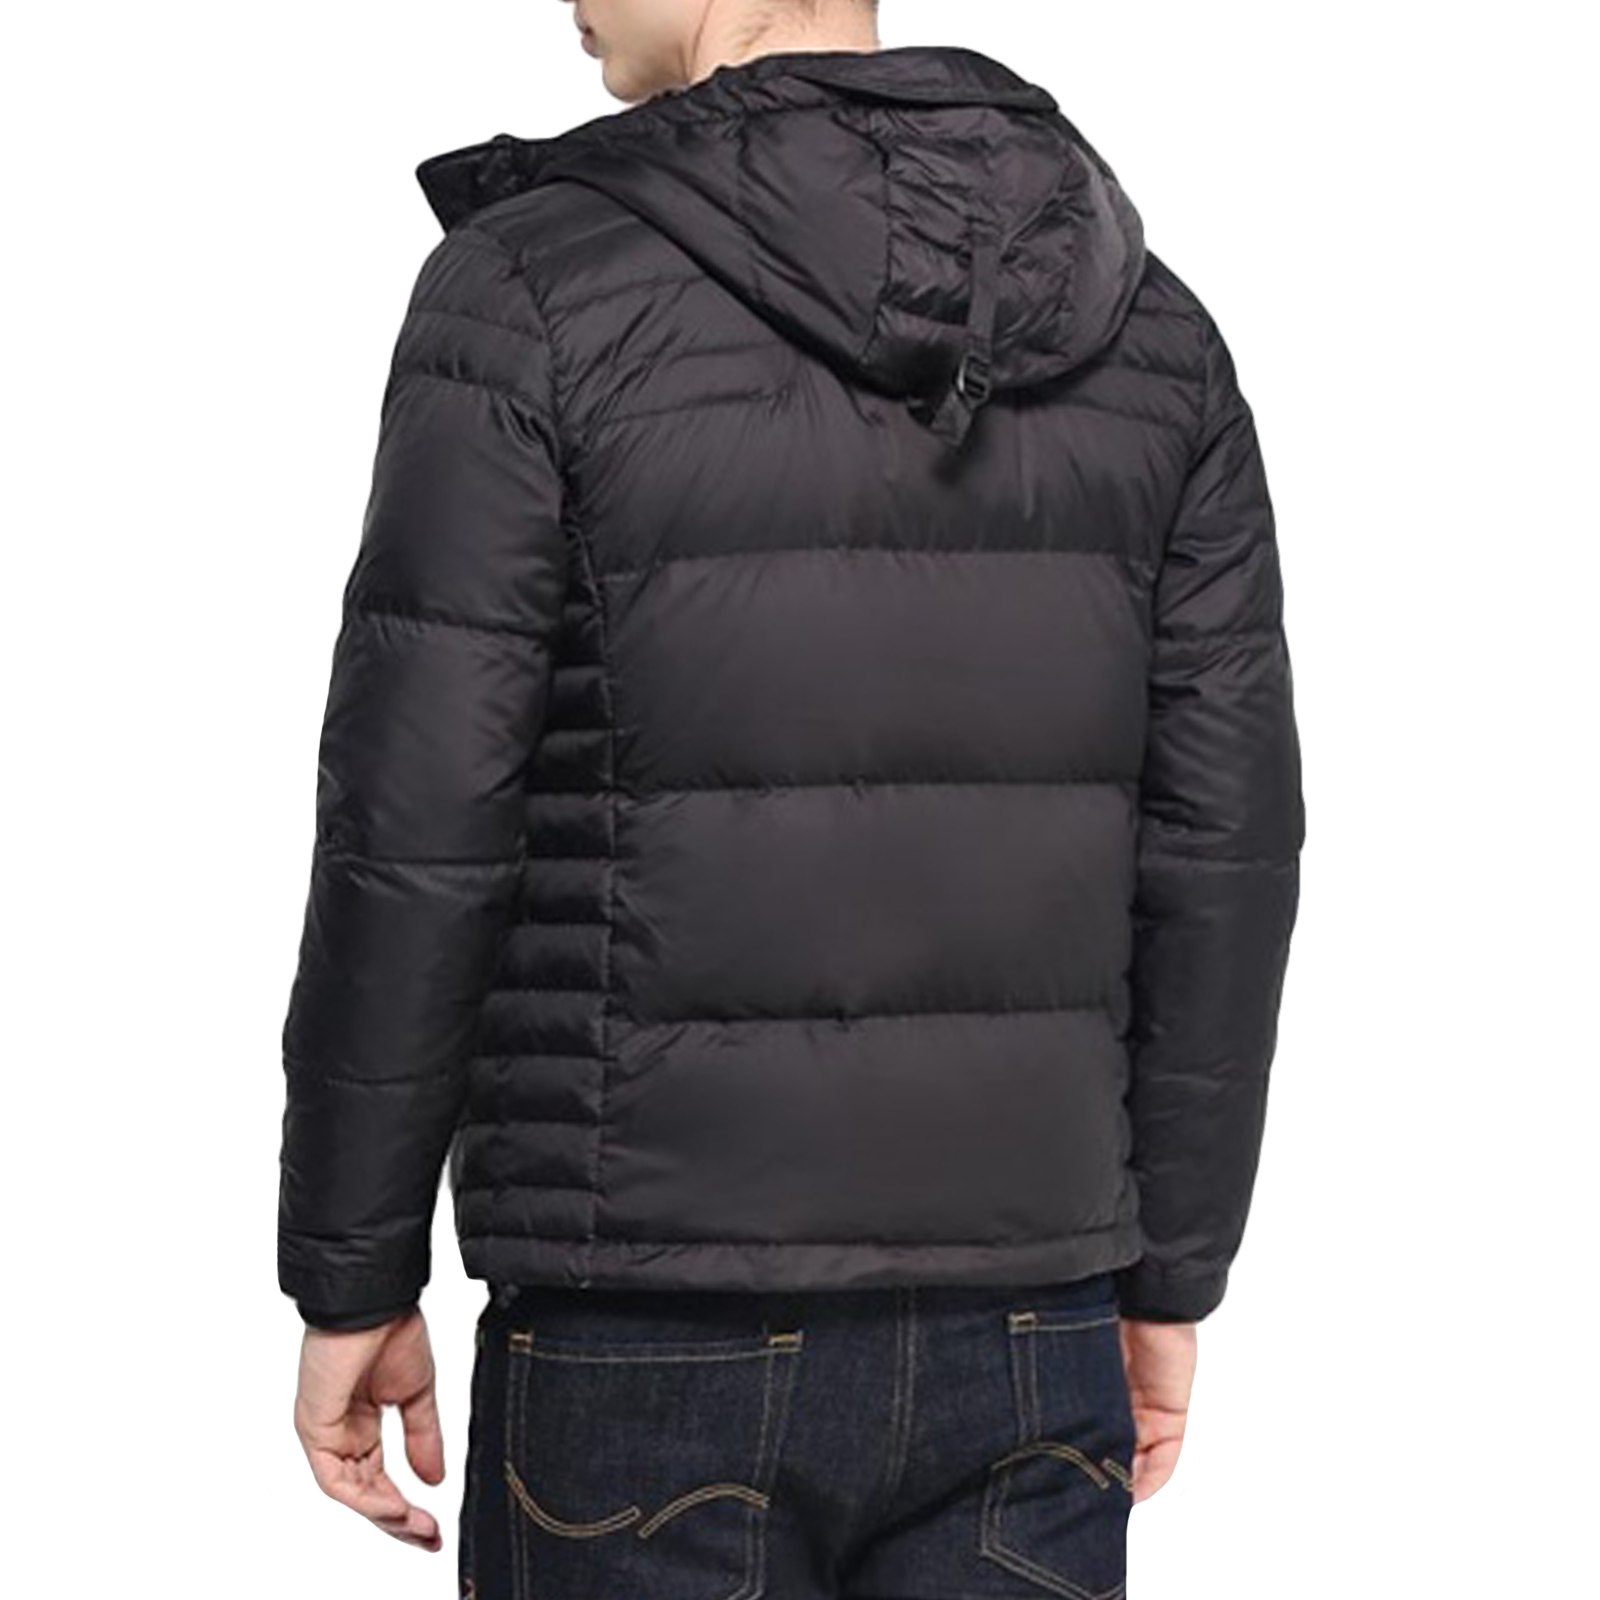 Fashion Thirsty New Womens Ladies Plus Size Long Quilted Padded Winter Jacket Coat Fur Trim Hood. £ out of 5 stars Womens Brave Soul Long Fur Trimmed Hooded Padded Puffer Parka Winter Jacket Coat. £ - £ Prime. out of 5 stars